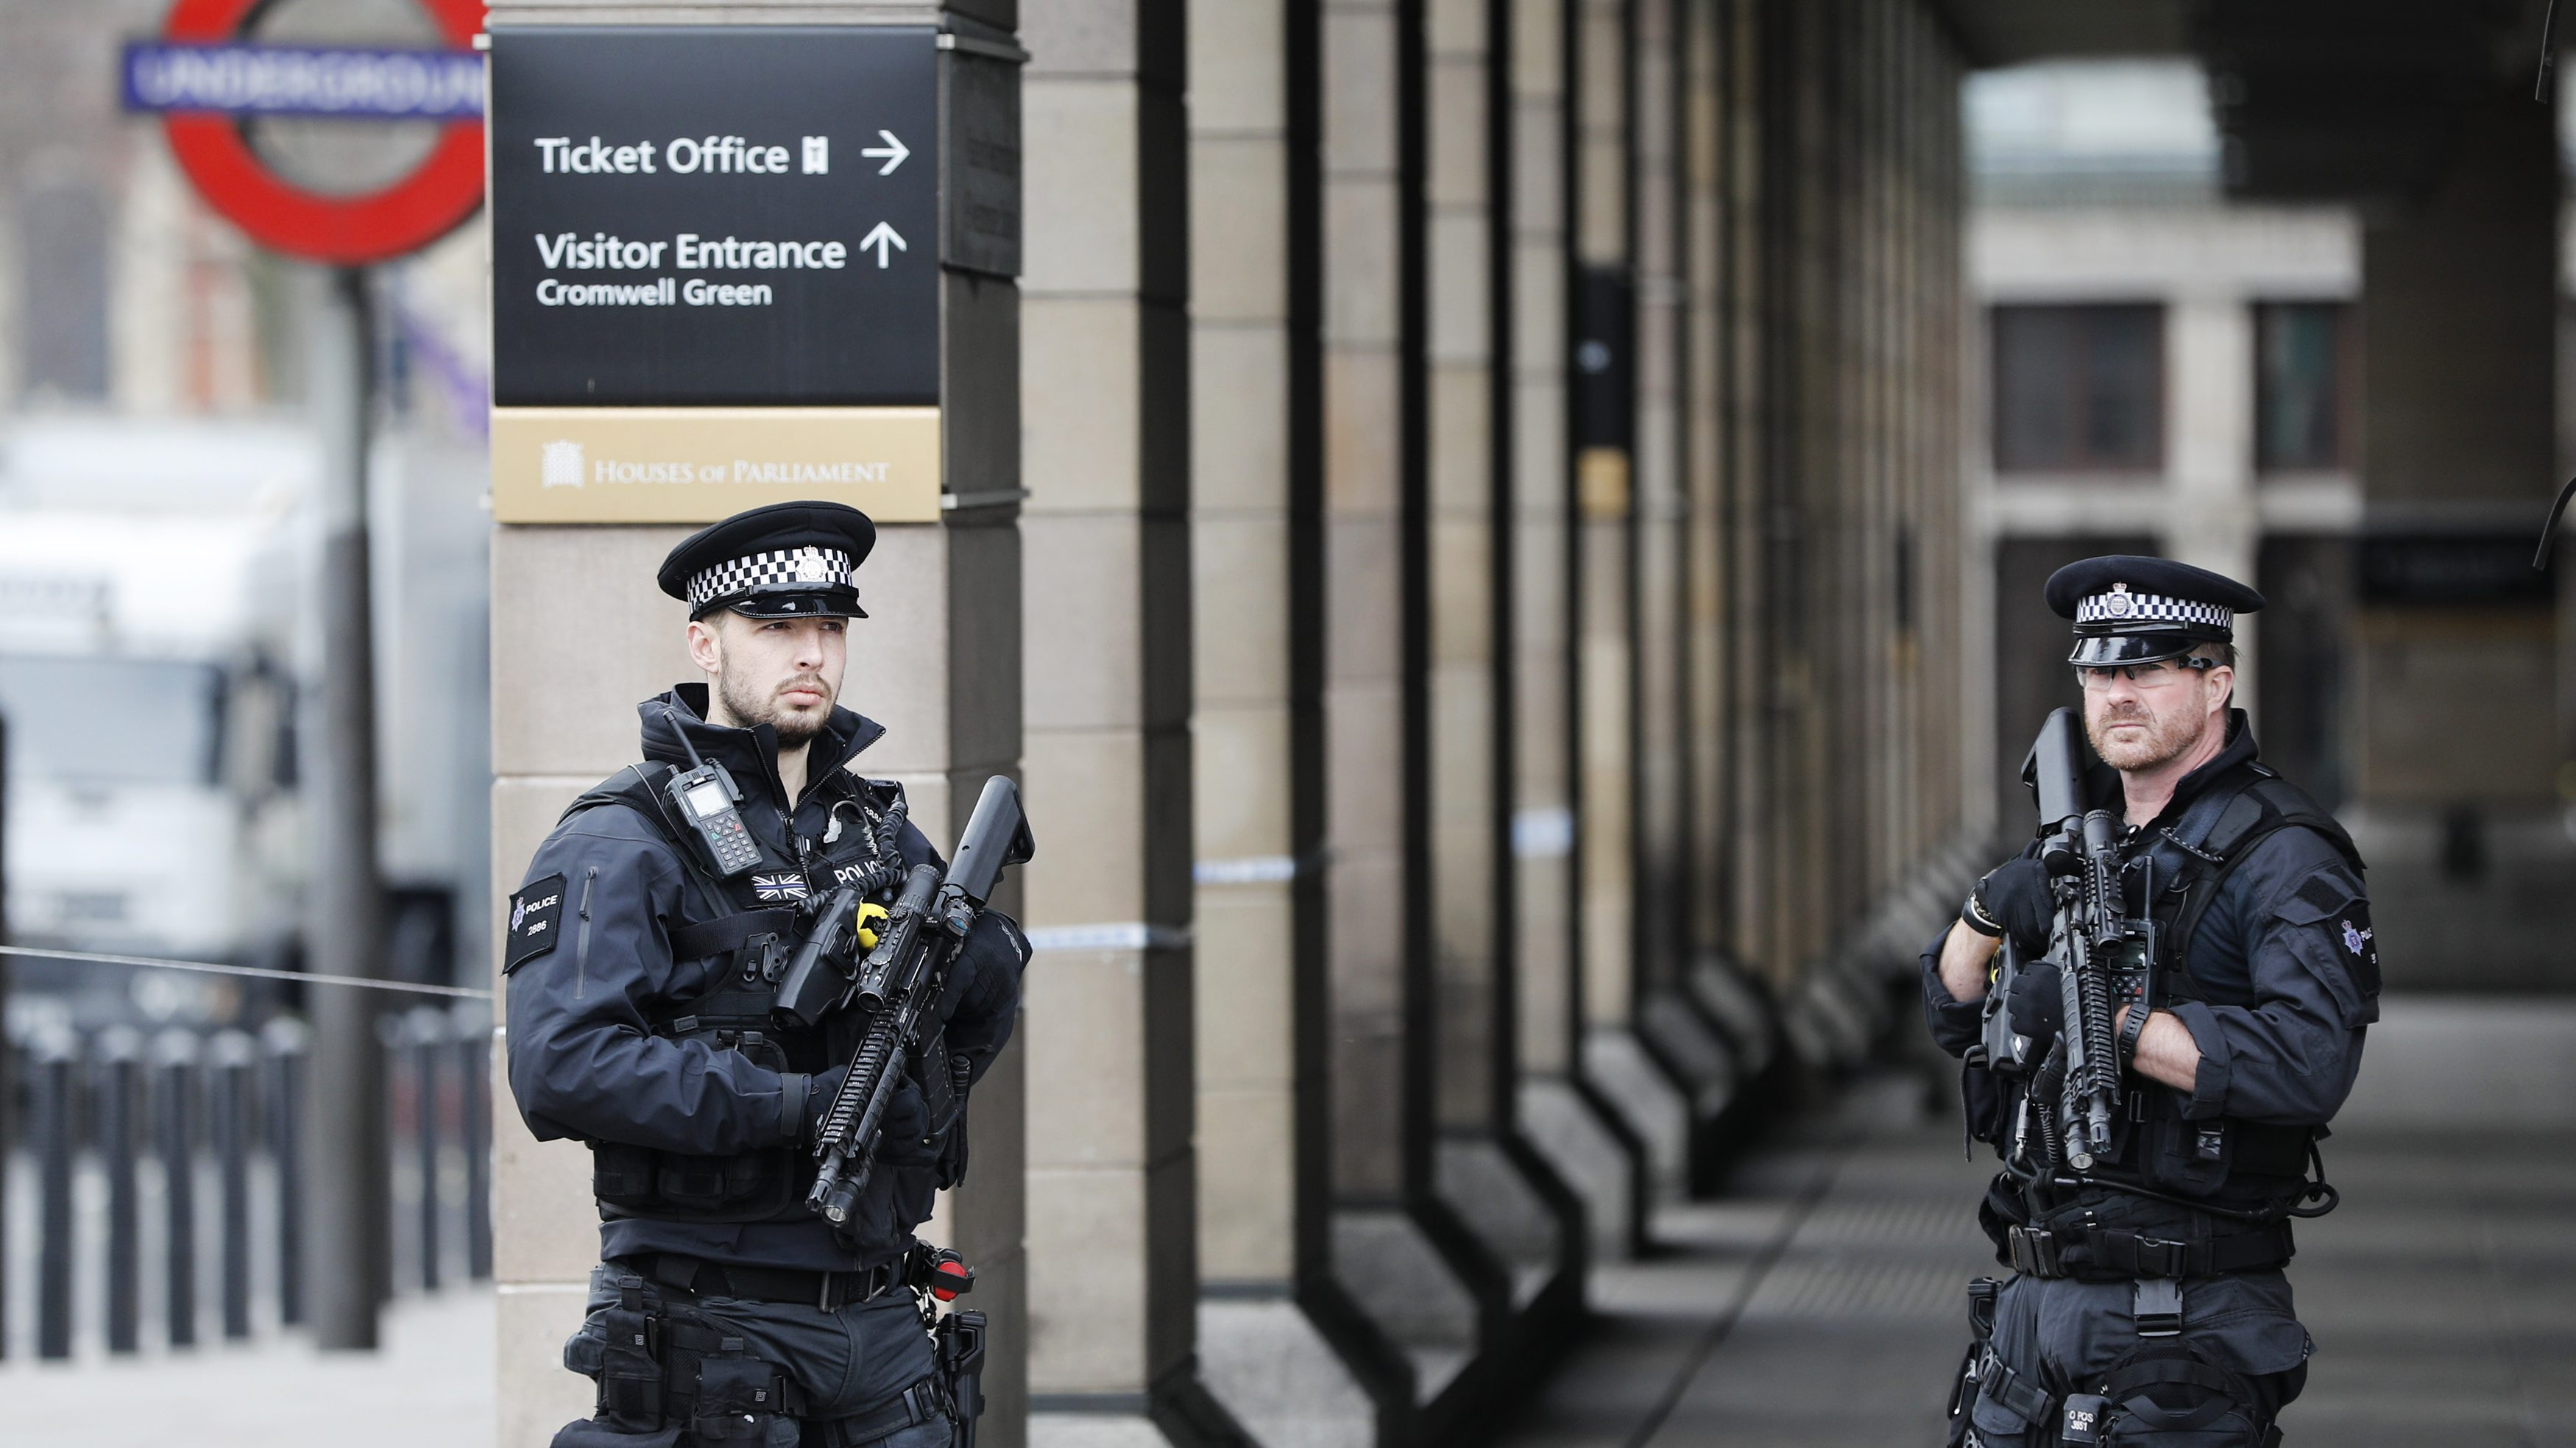 Armed police officers patrol outside Westminster underground station the morning after an attack in London